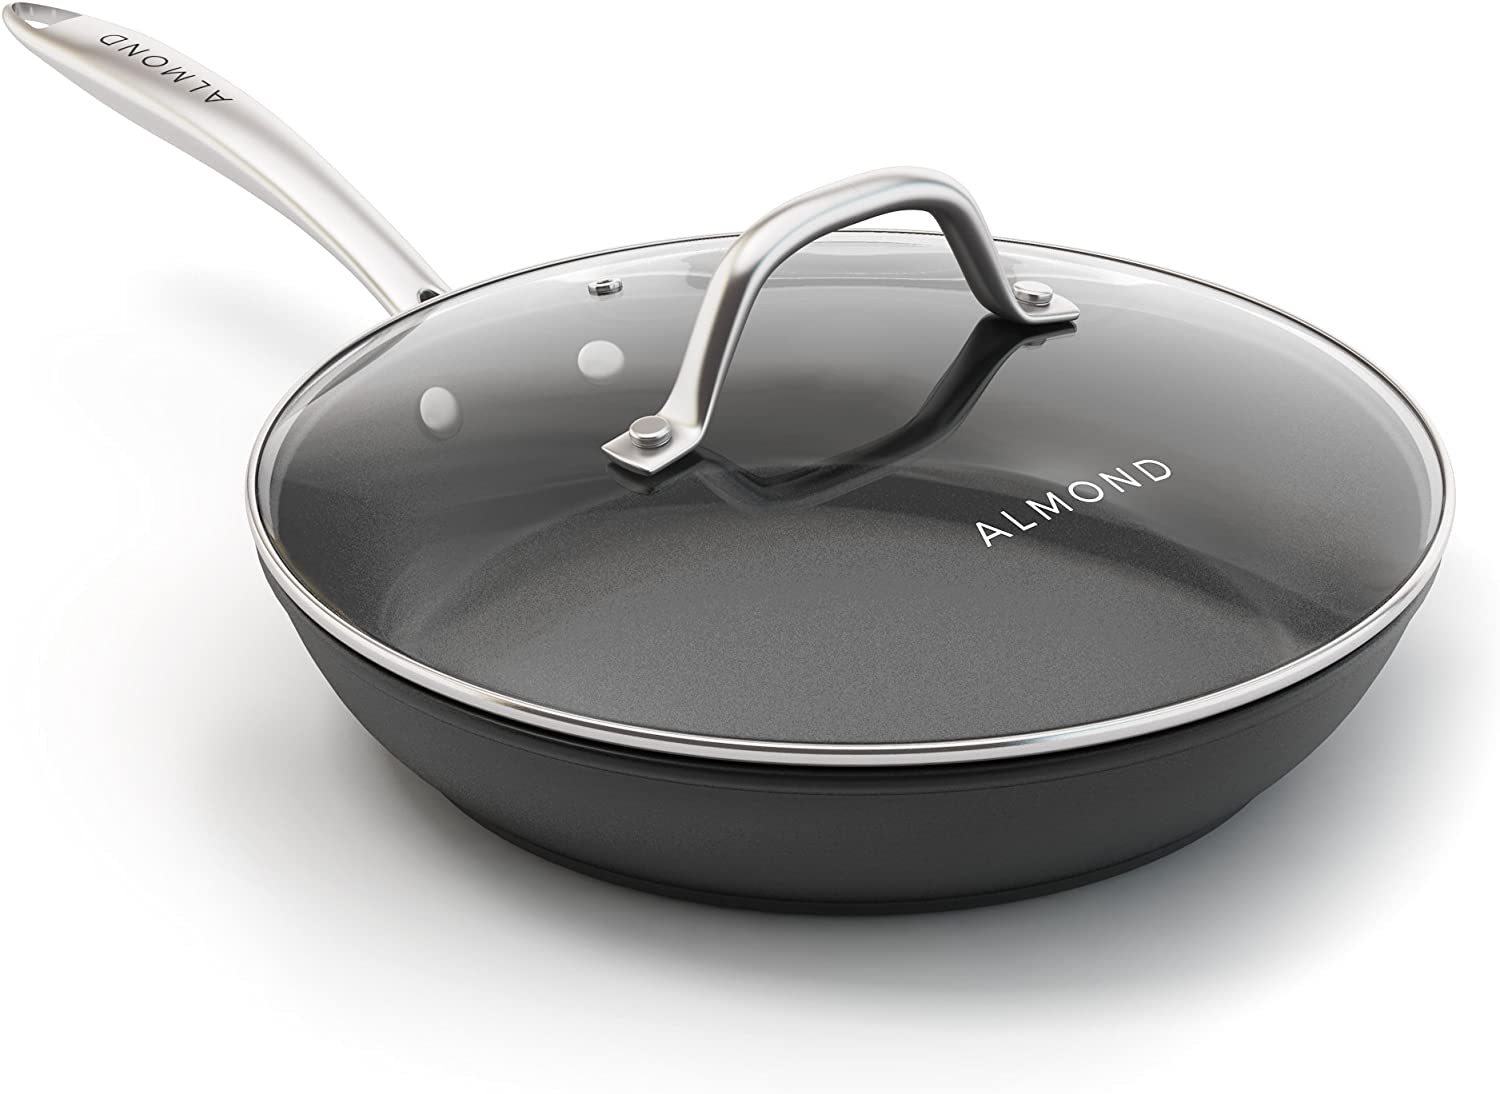 23 S 6 Non-Stick Skillet with Glass Lid